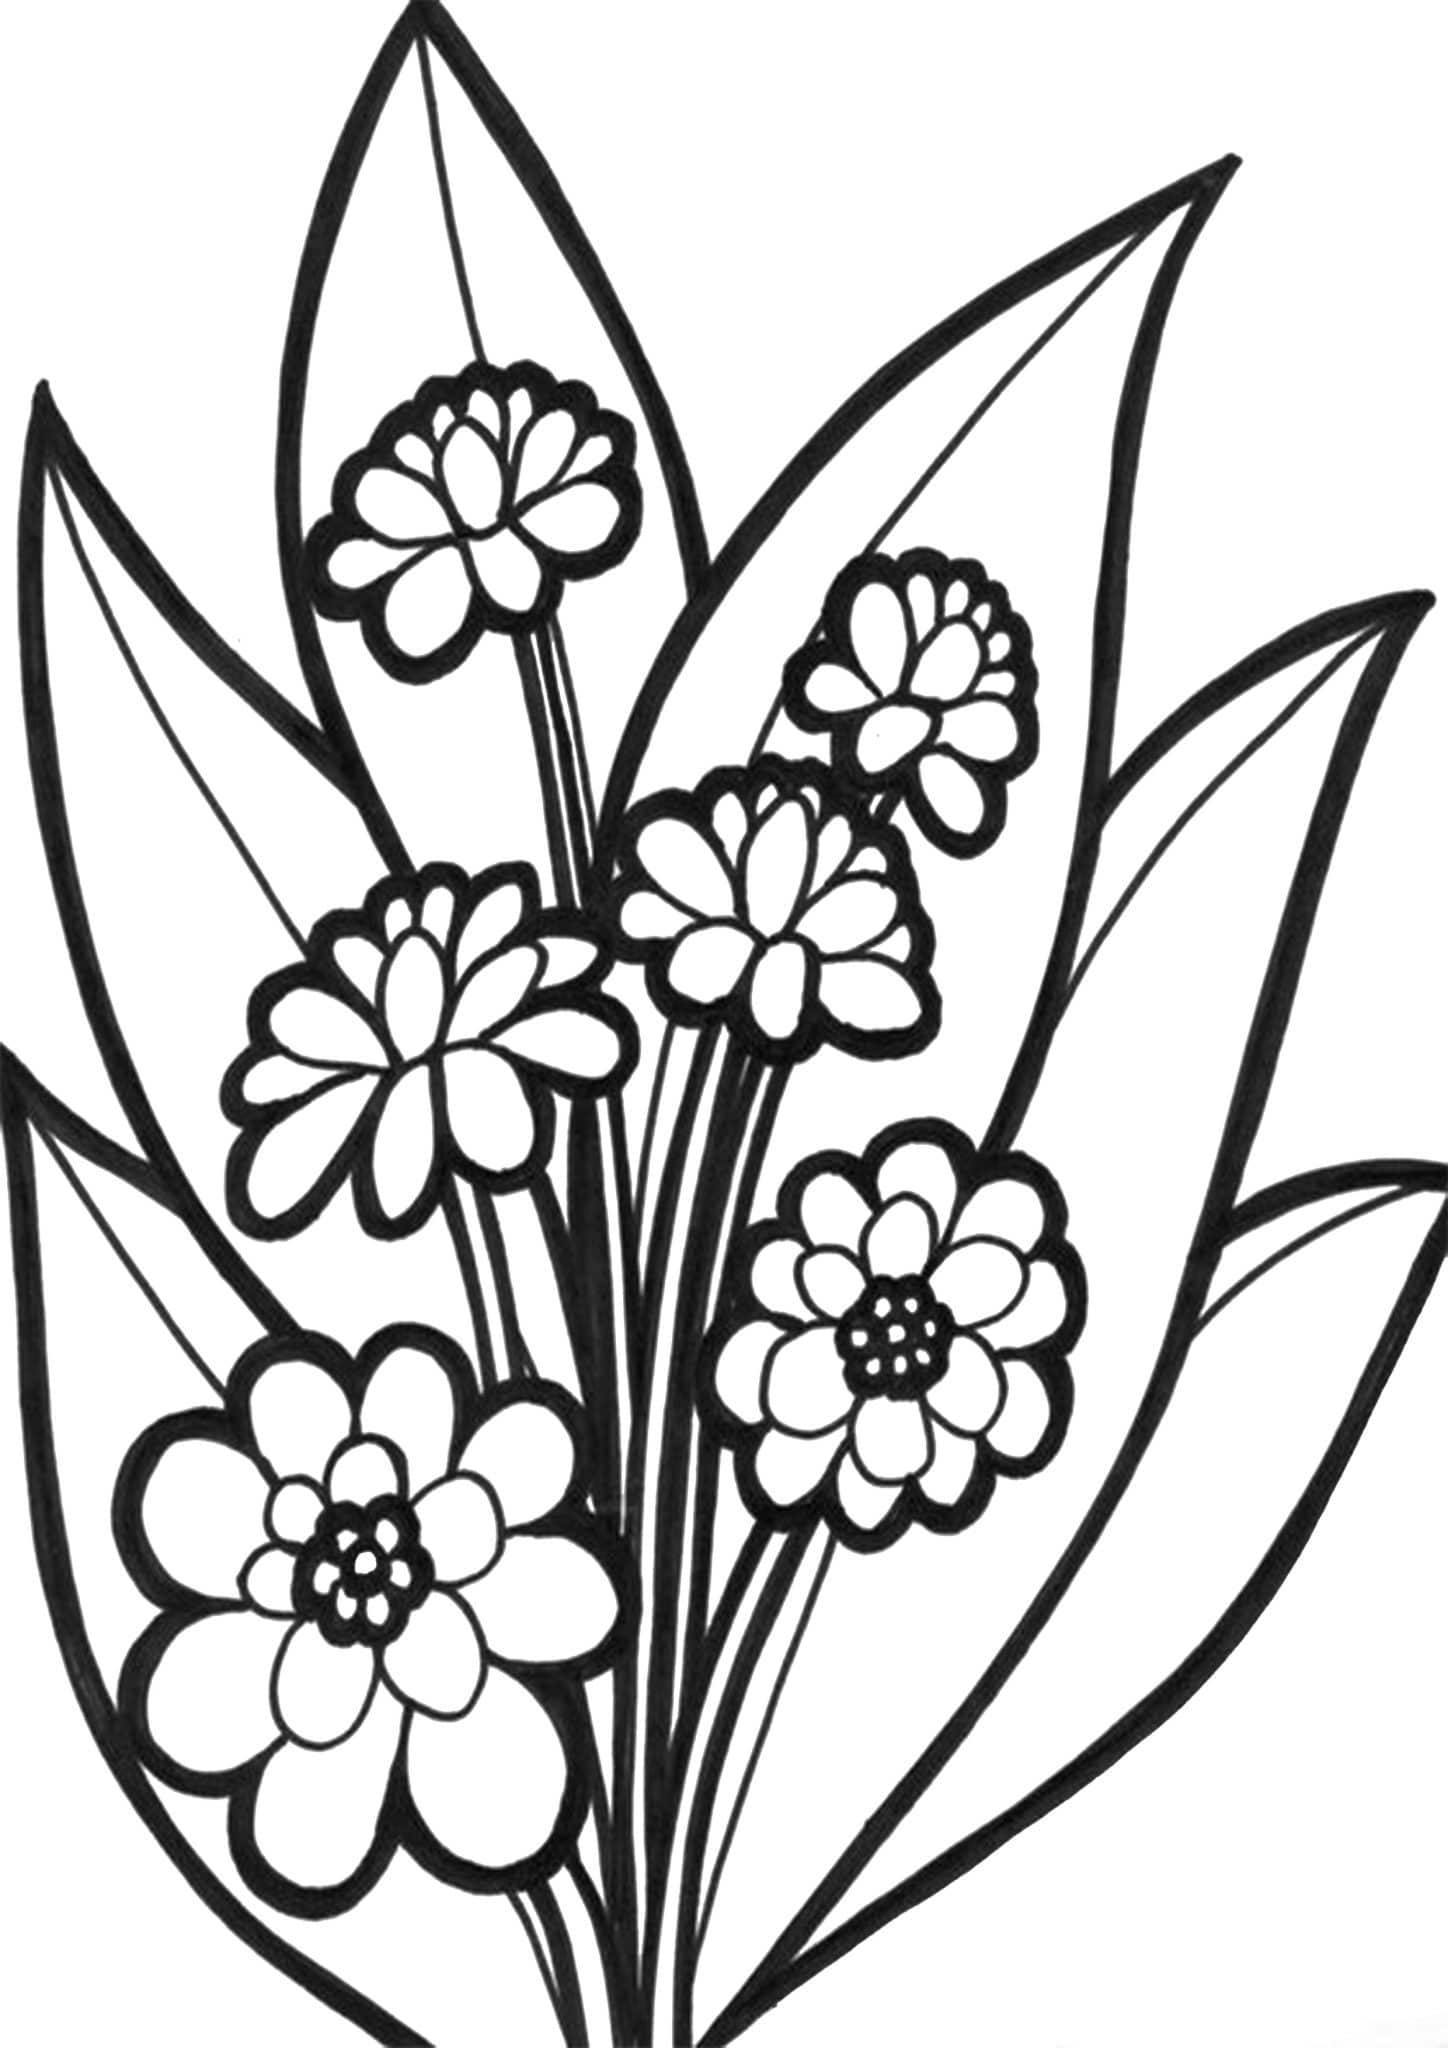 orchid coloring pages orchid coloring pages at getcoloringscom free printable coloring orchid pages